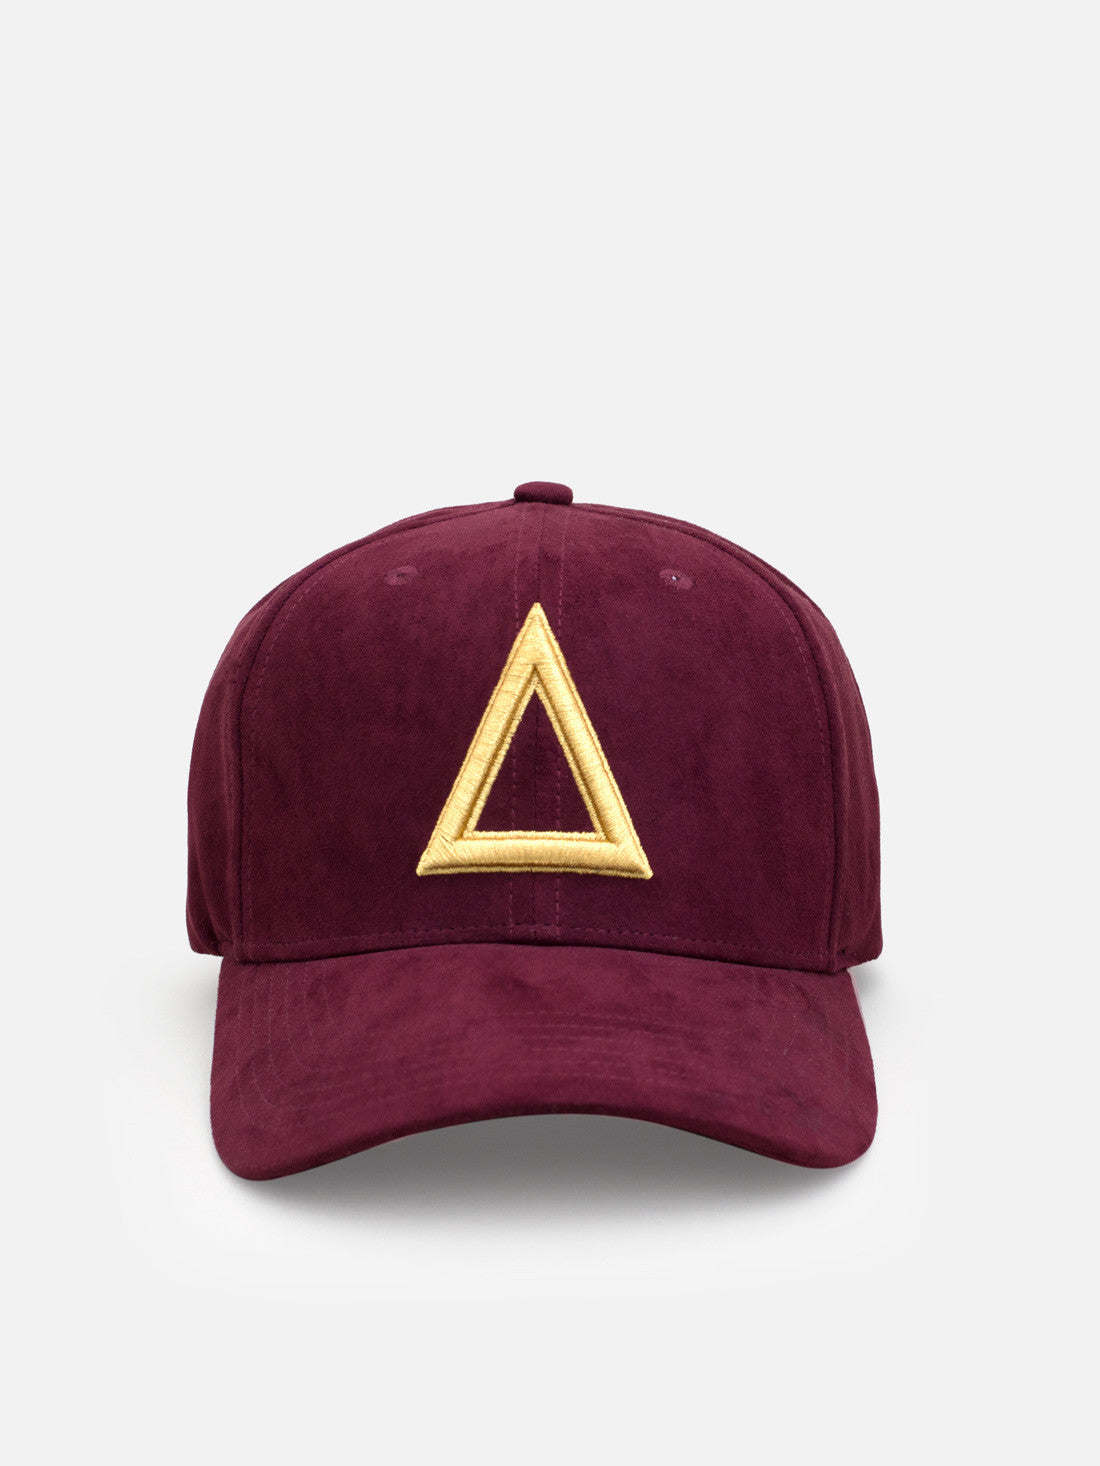 Suede Dad hat Burundy - Gold tri